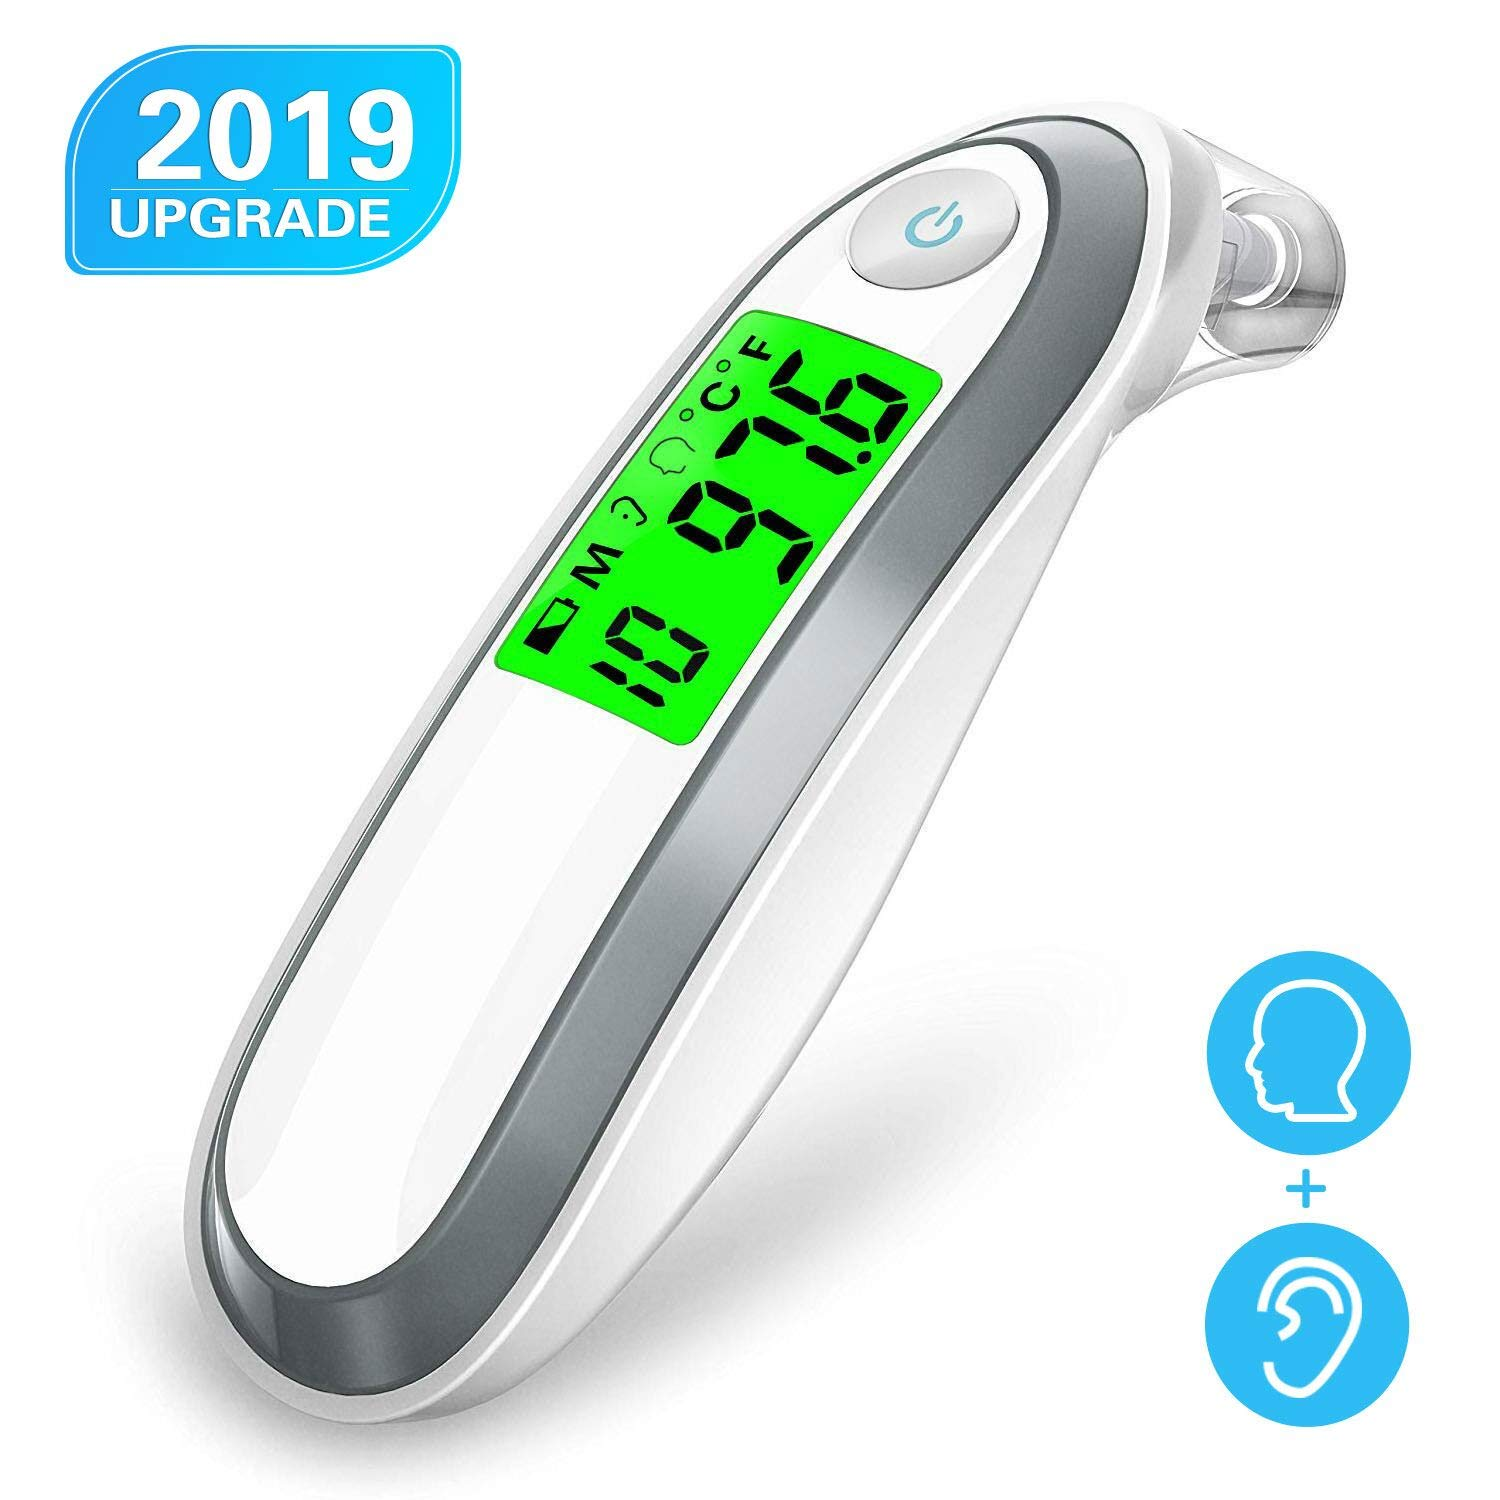 Upgrade Ear and Forehead Thermometer, Digital Medical Infrared Thermometer with 3 Fever Indicators, Latest Smart Chip for Super Instant Accurate Reading, Perfect for Infant Baby Kids and Adults